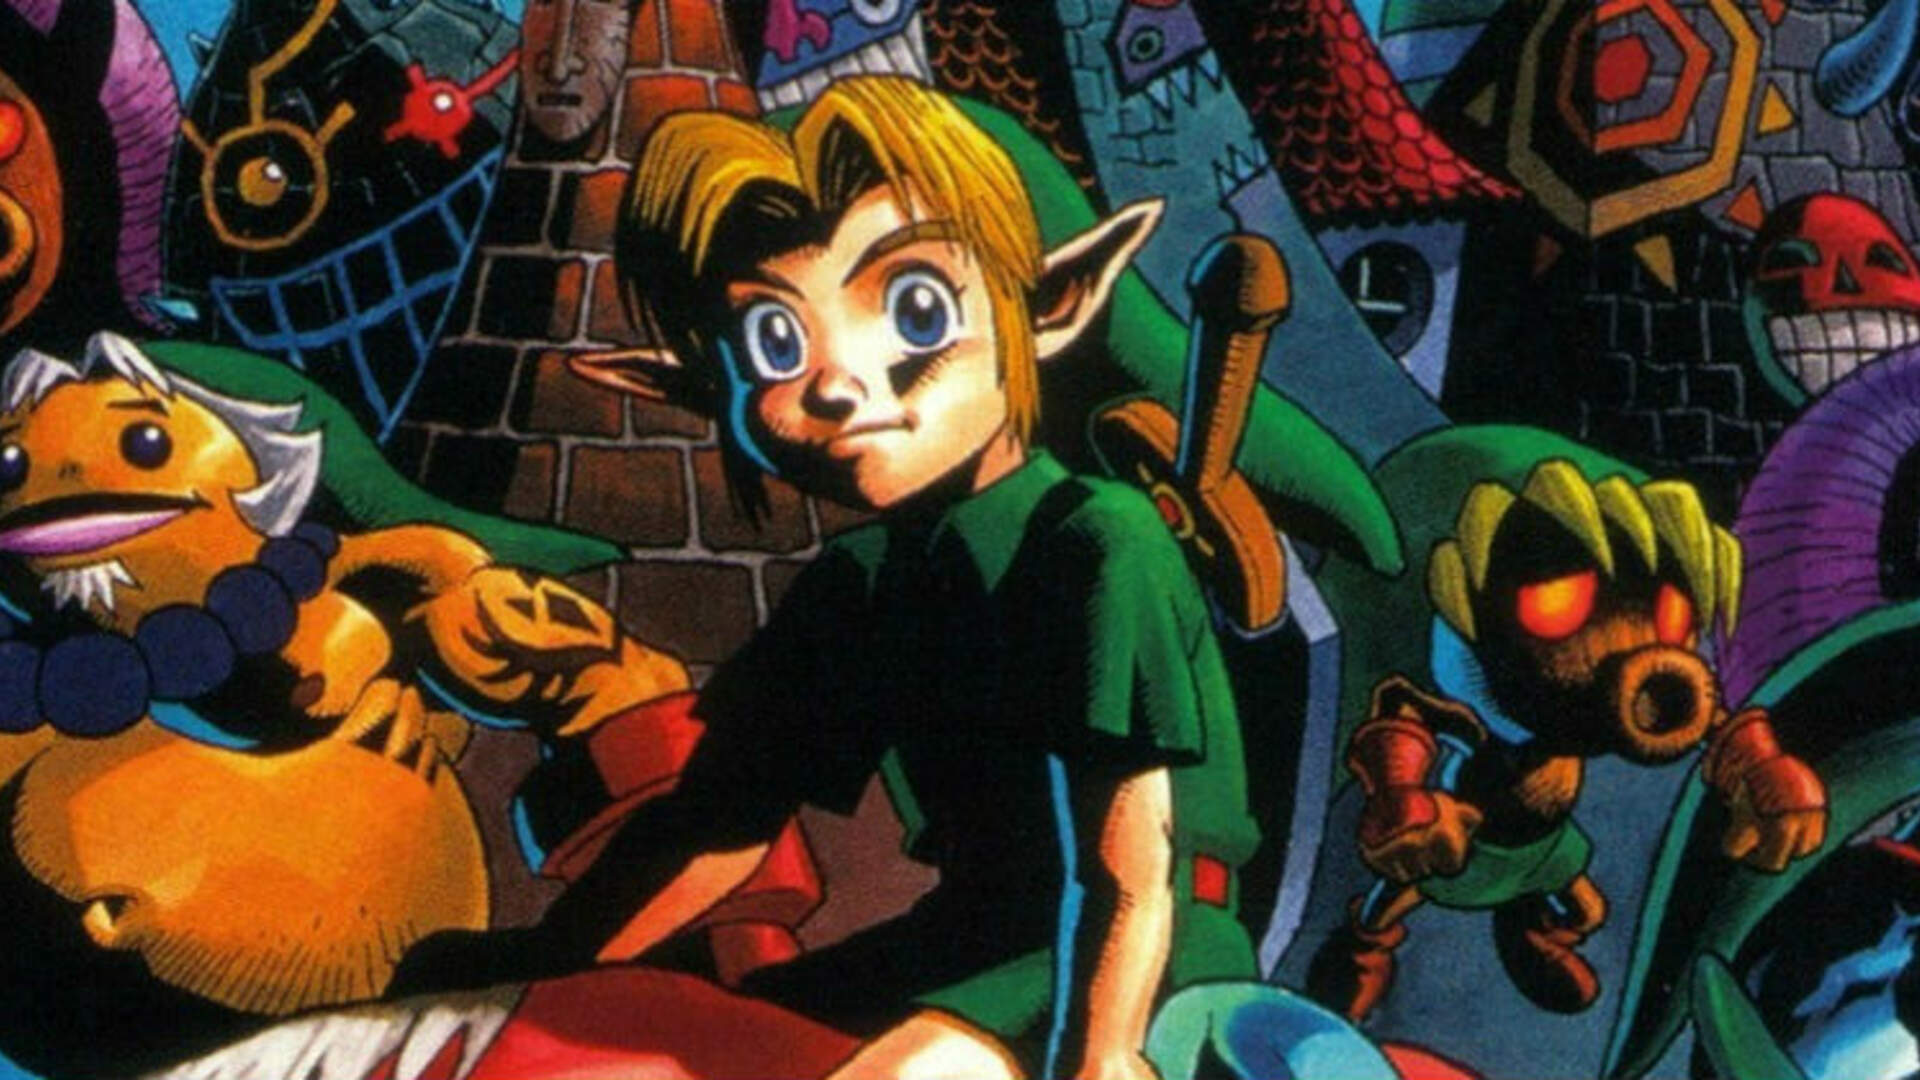 Note Block Beat Box: Listening to The Song of Healing from The Legend of Zelda: Majora's Mask